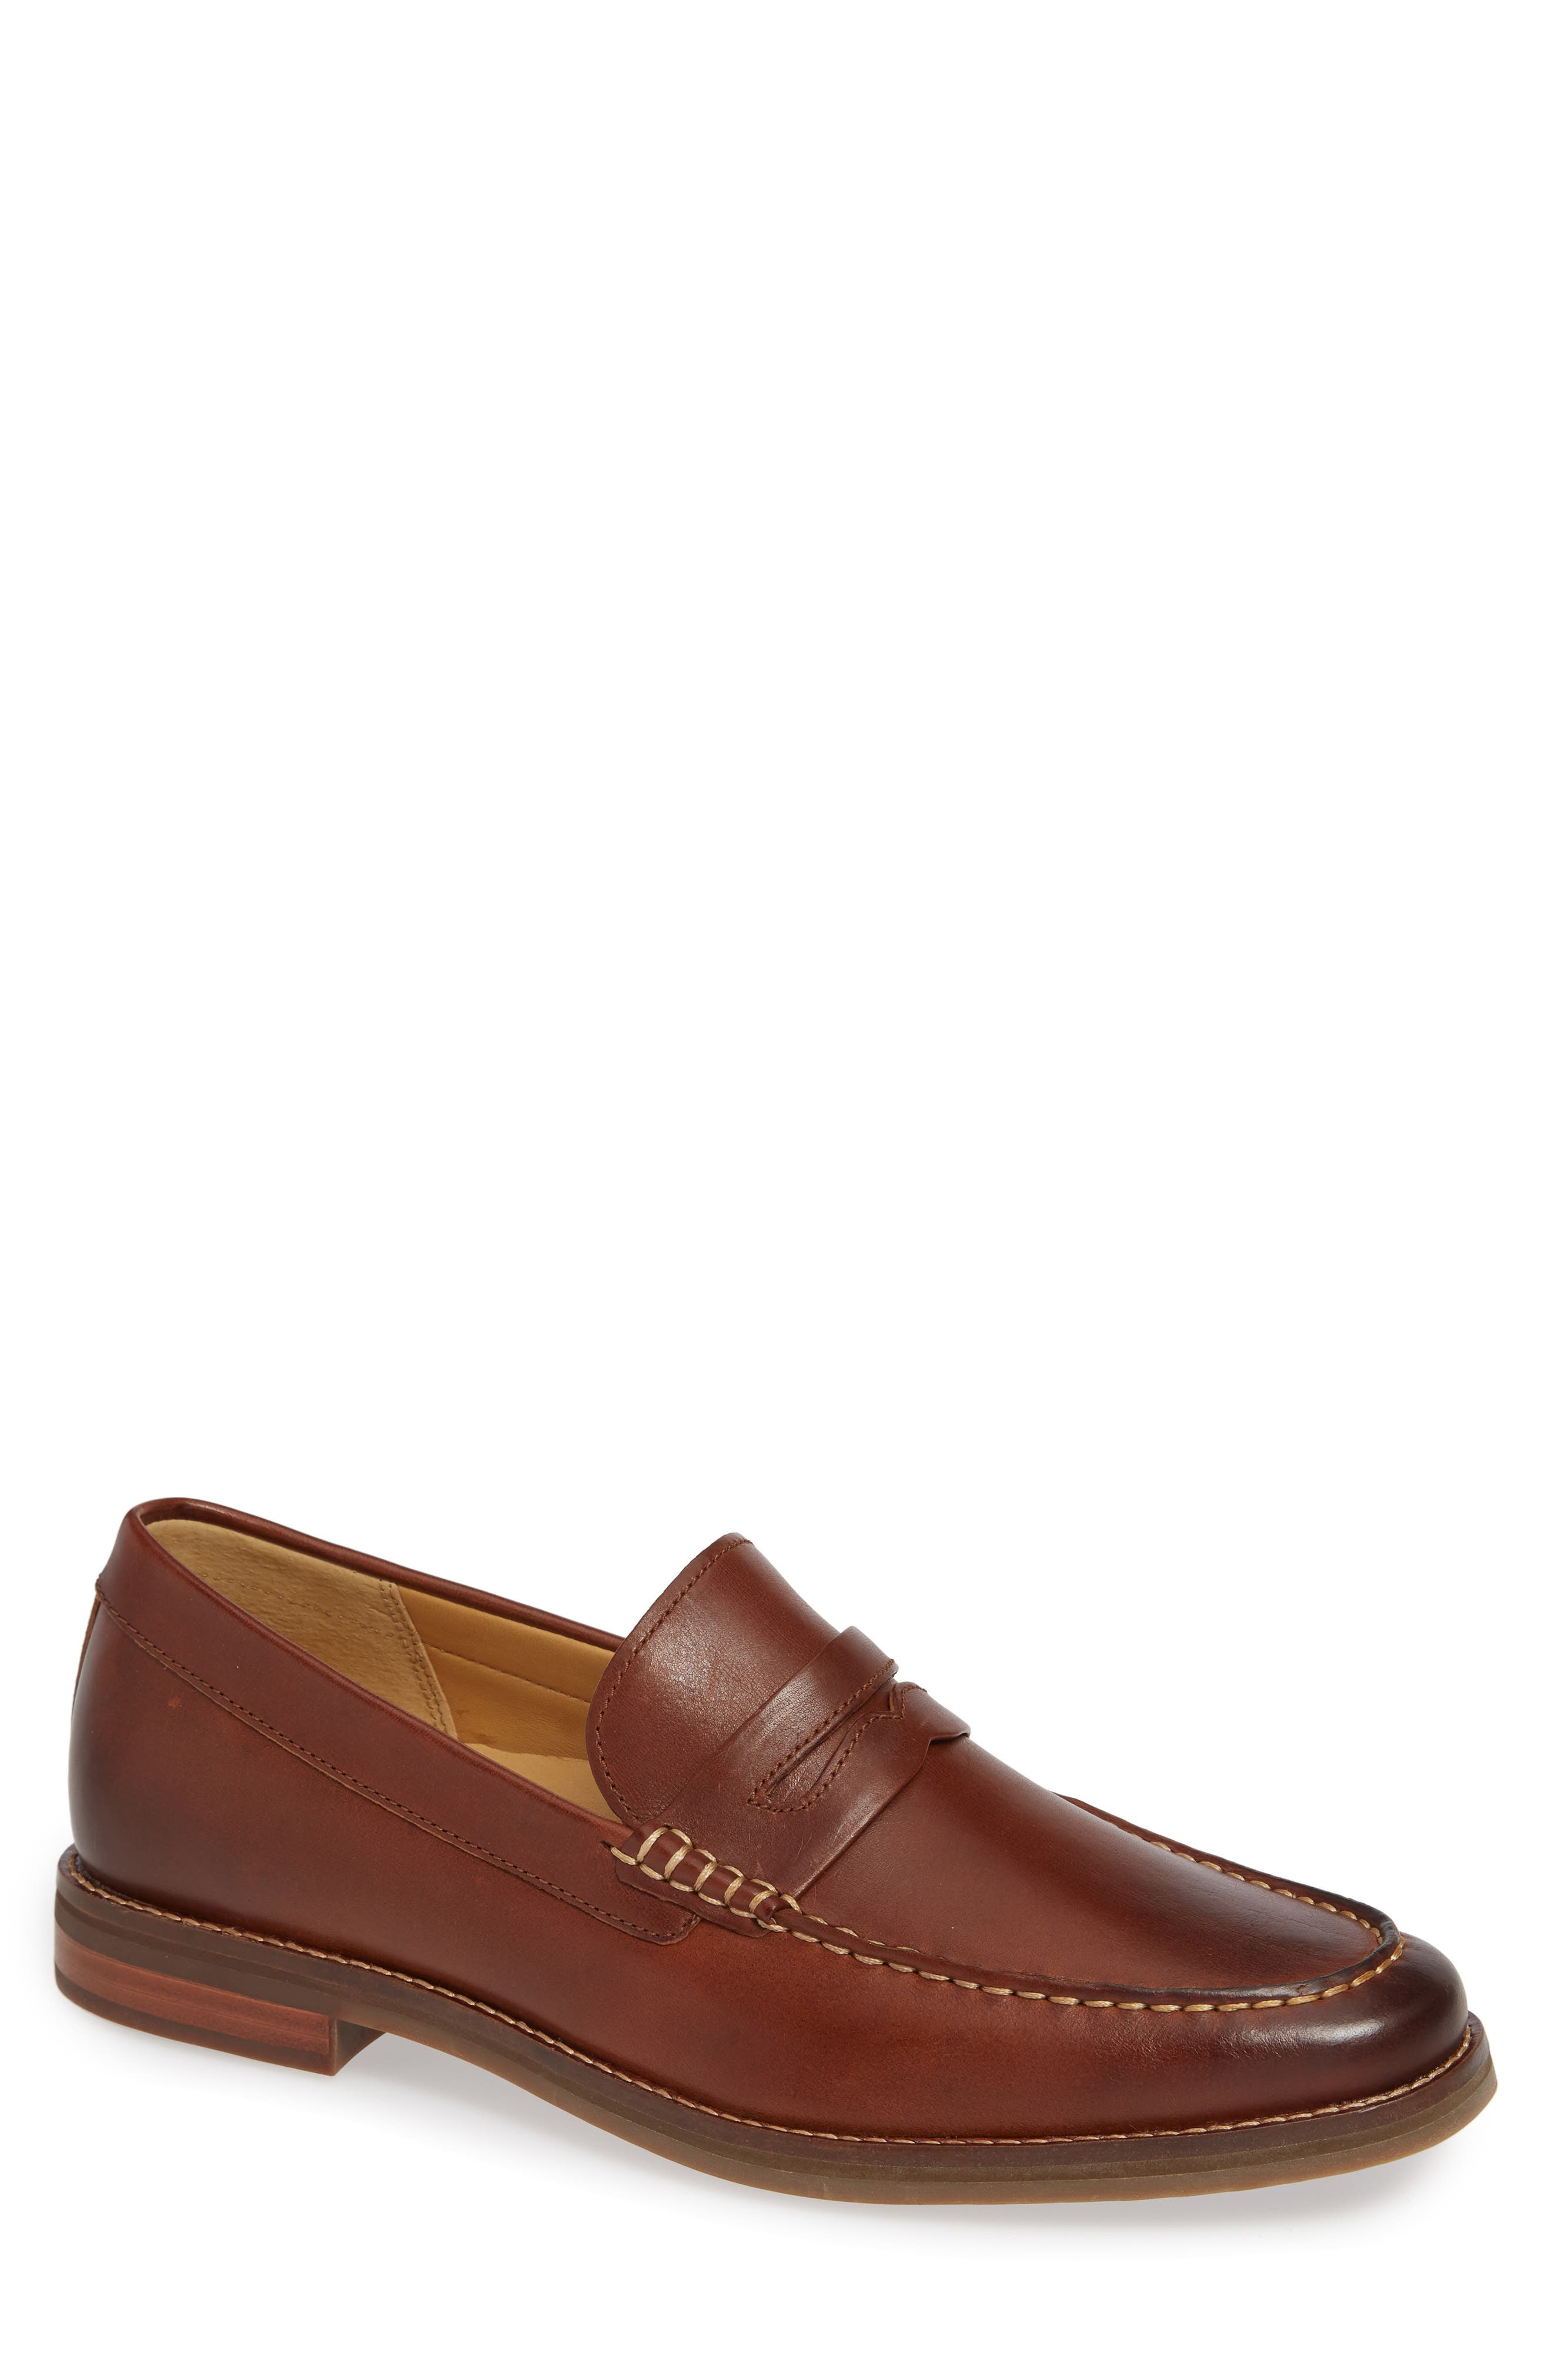 Gold Cup Exeter Penny Loafer,                             Main thumbnail 1, color,                             TAN